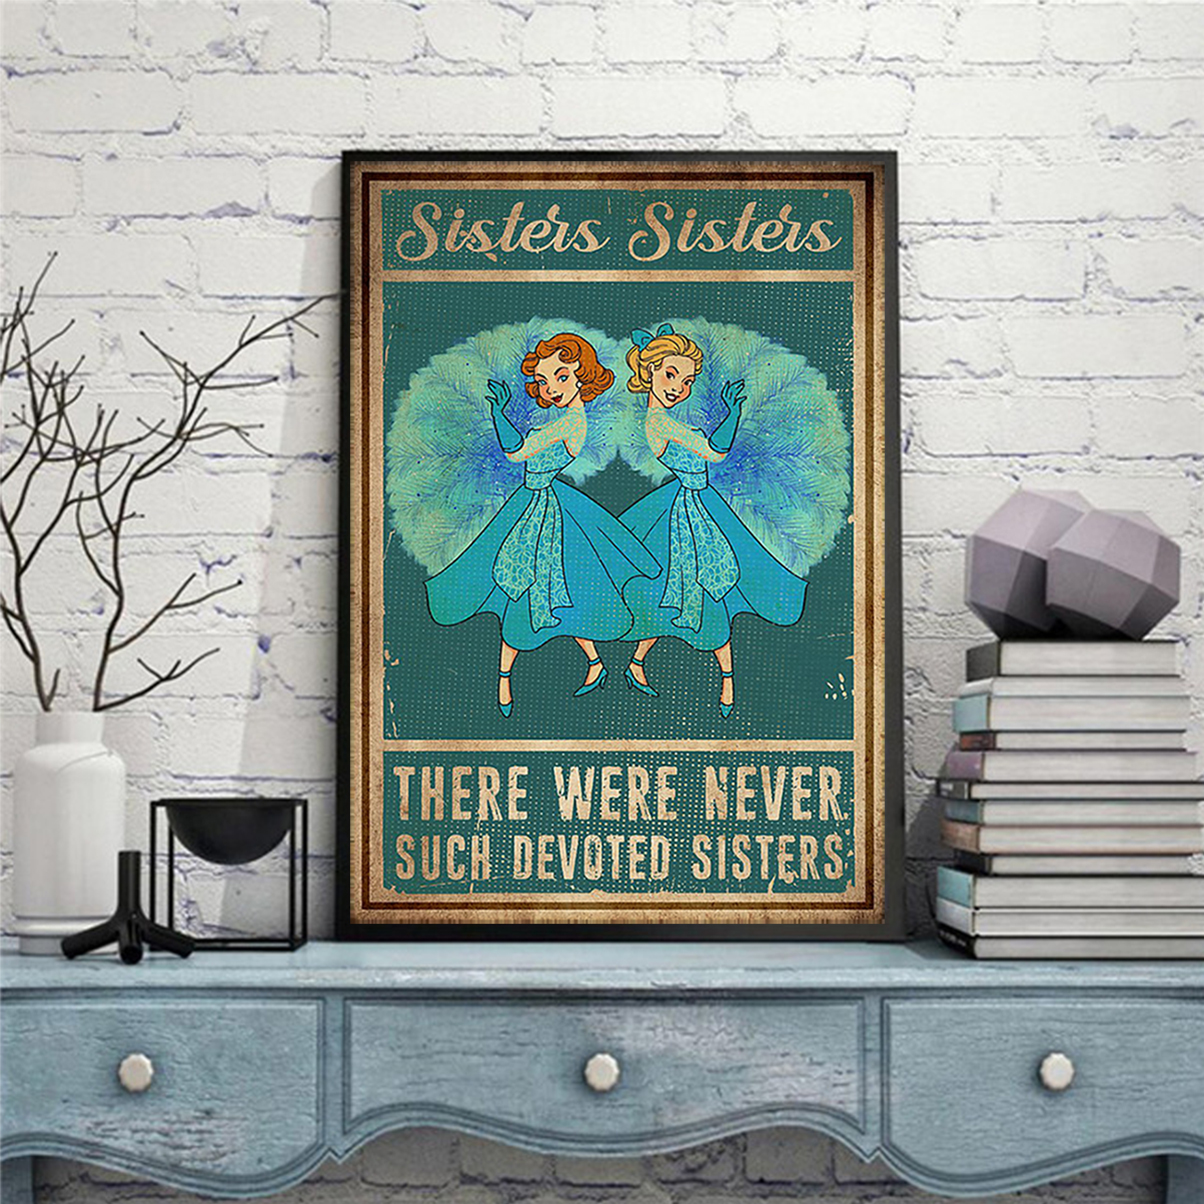 Sisters sisters there were never such devoted sisters poster A2